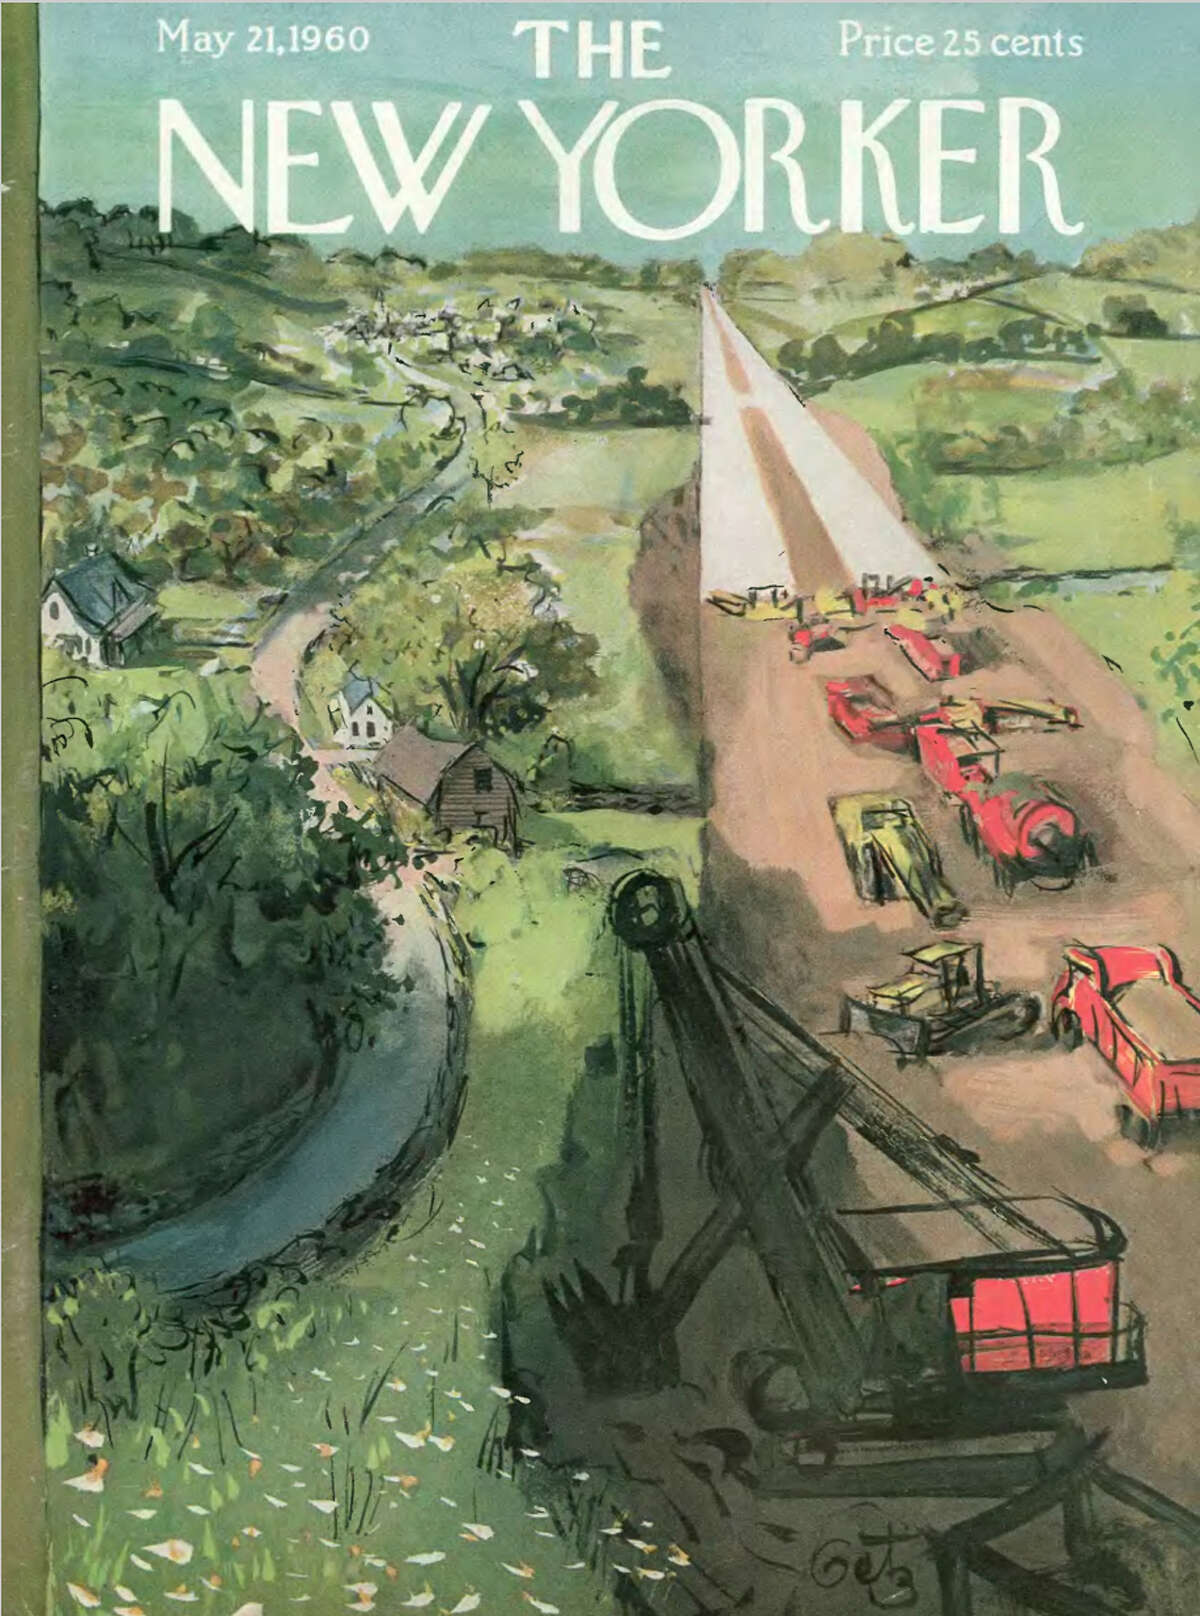 Above is a New Yorker cover by Arthur Getz from May 1960 of construction of Interstate 95 in the Westport area. The exhibit of magazine covers at the Westport Historical Society has been extended through July 5.